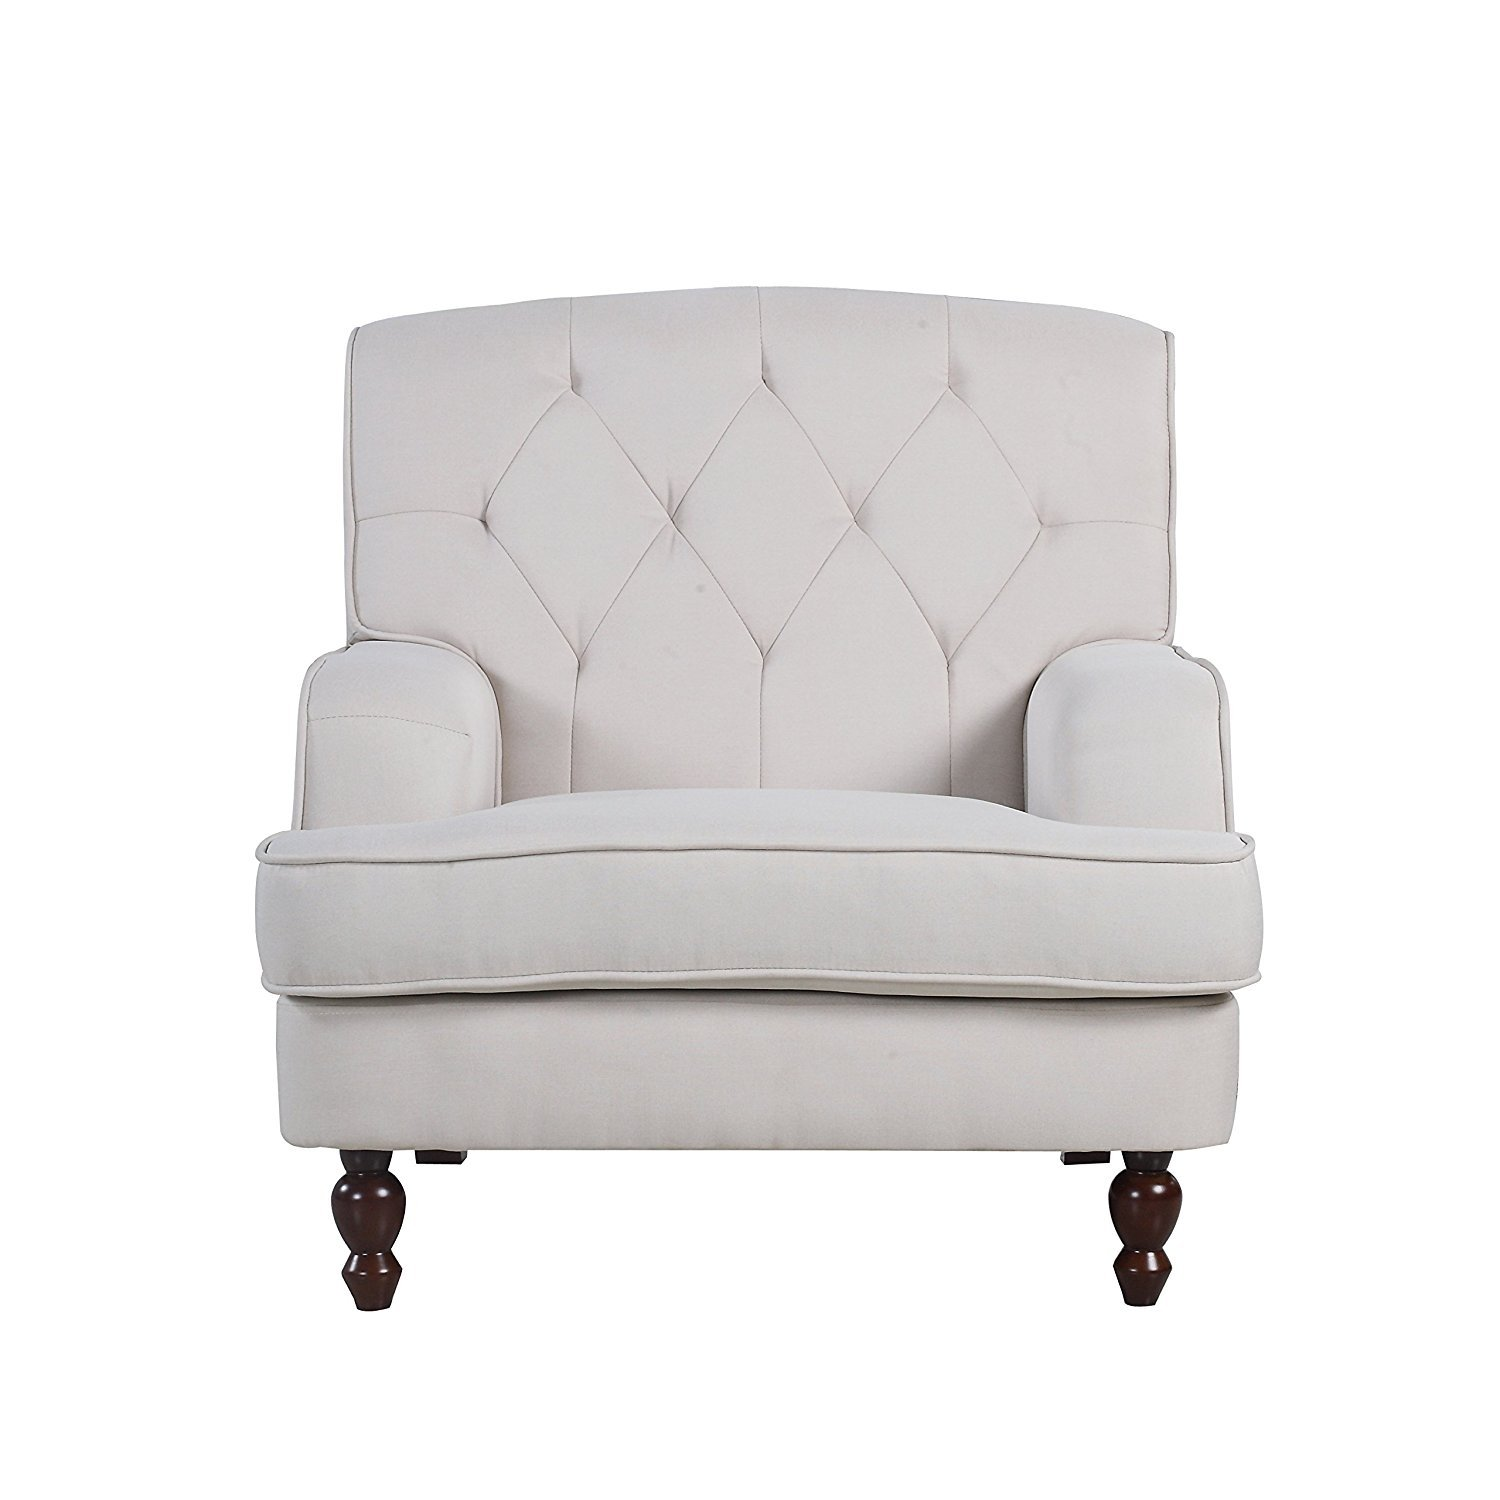 Details About Modern Tufted Fabric Living Room Armchair Beige